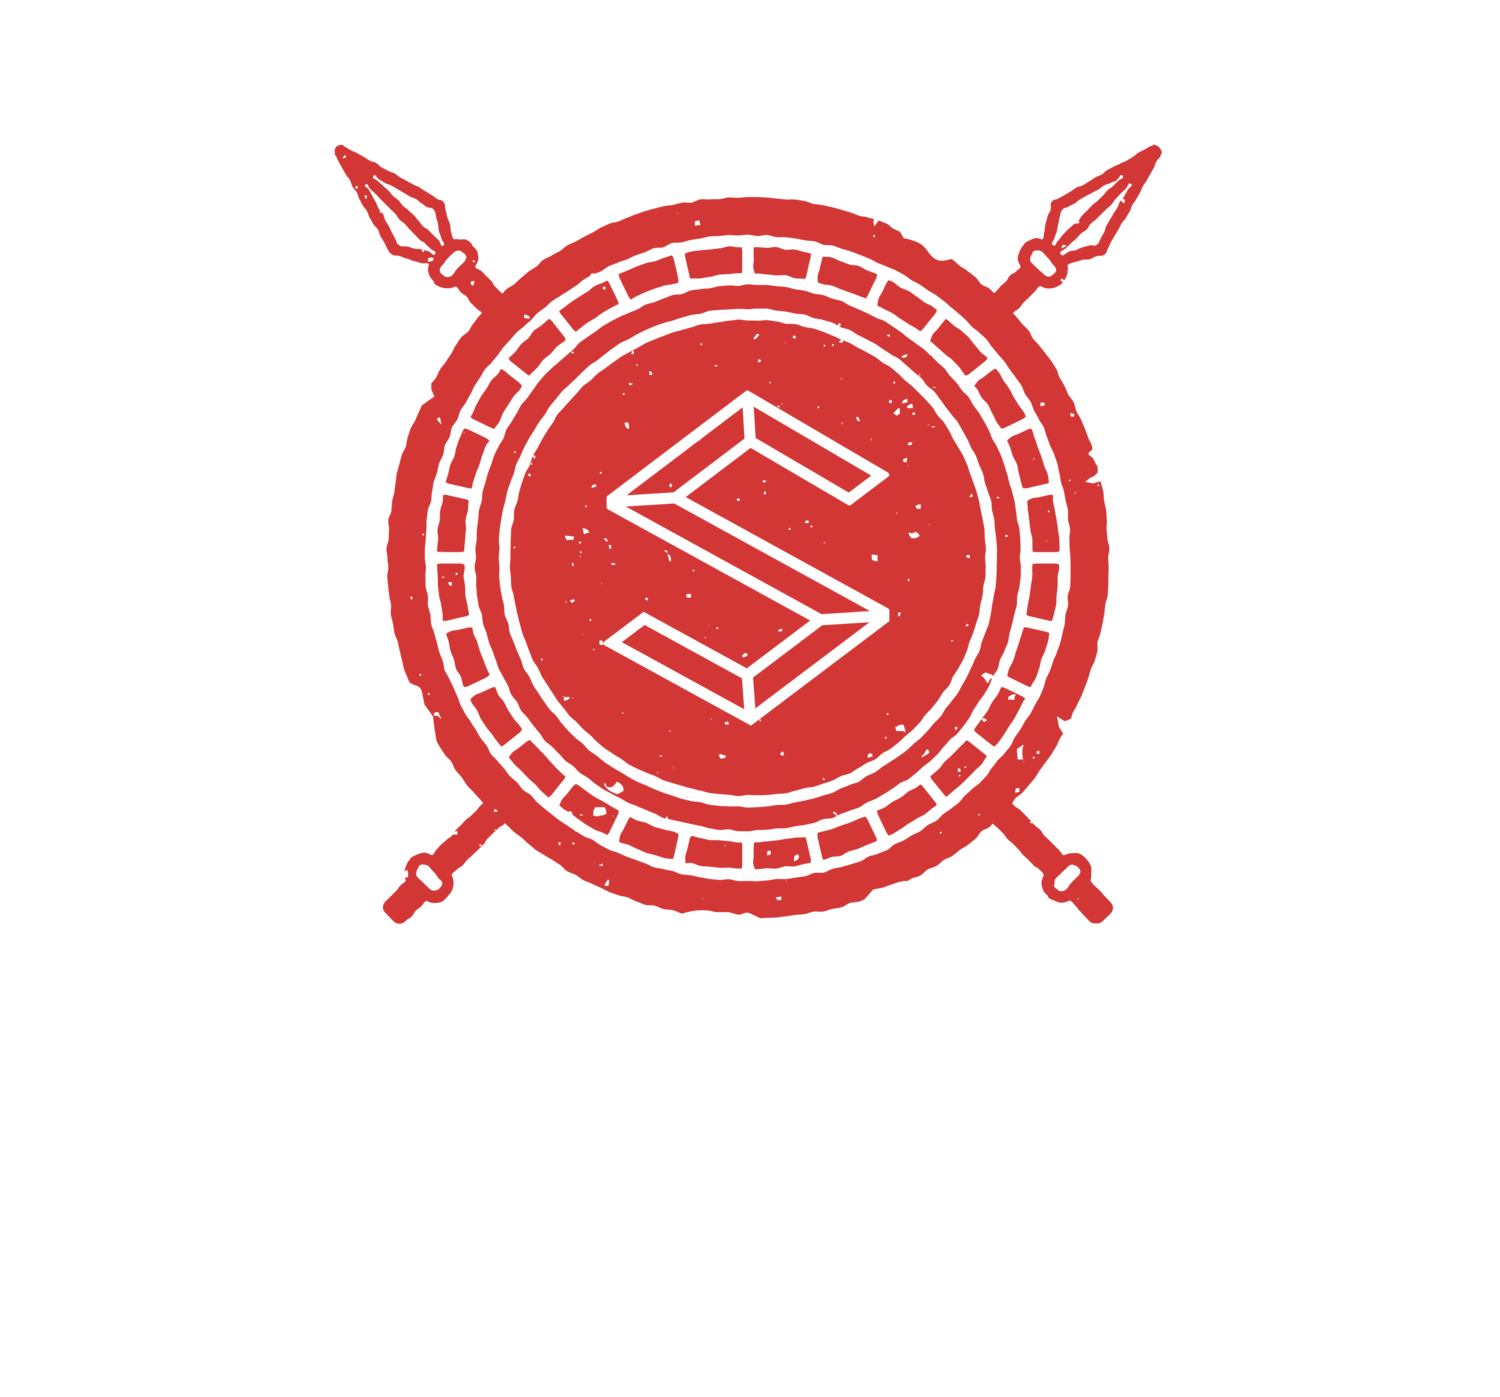 Spartan Mixed Martial Arts